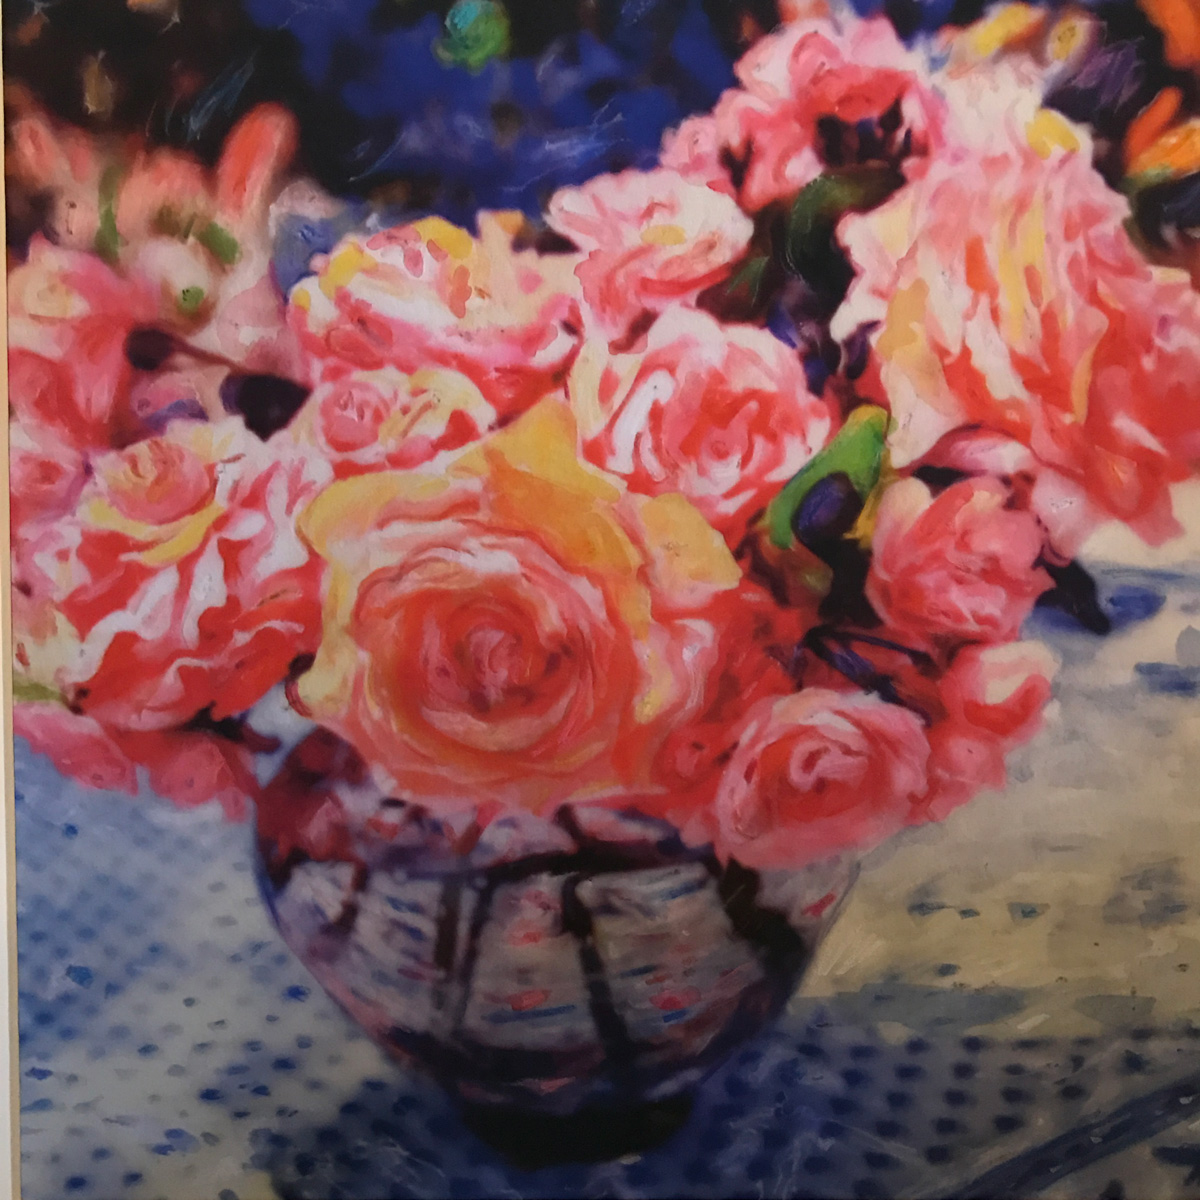 """Roses For Love  12""""x12"""" - Hand painted SX-70 photograph printed on watercolor paper."""